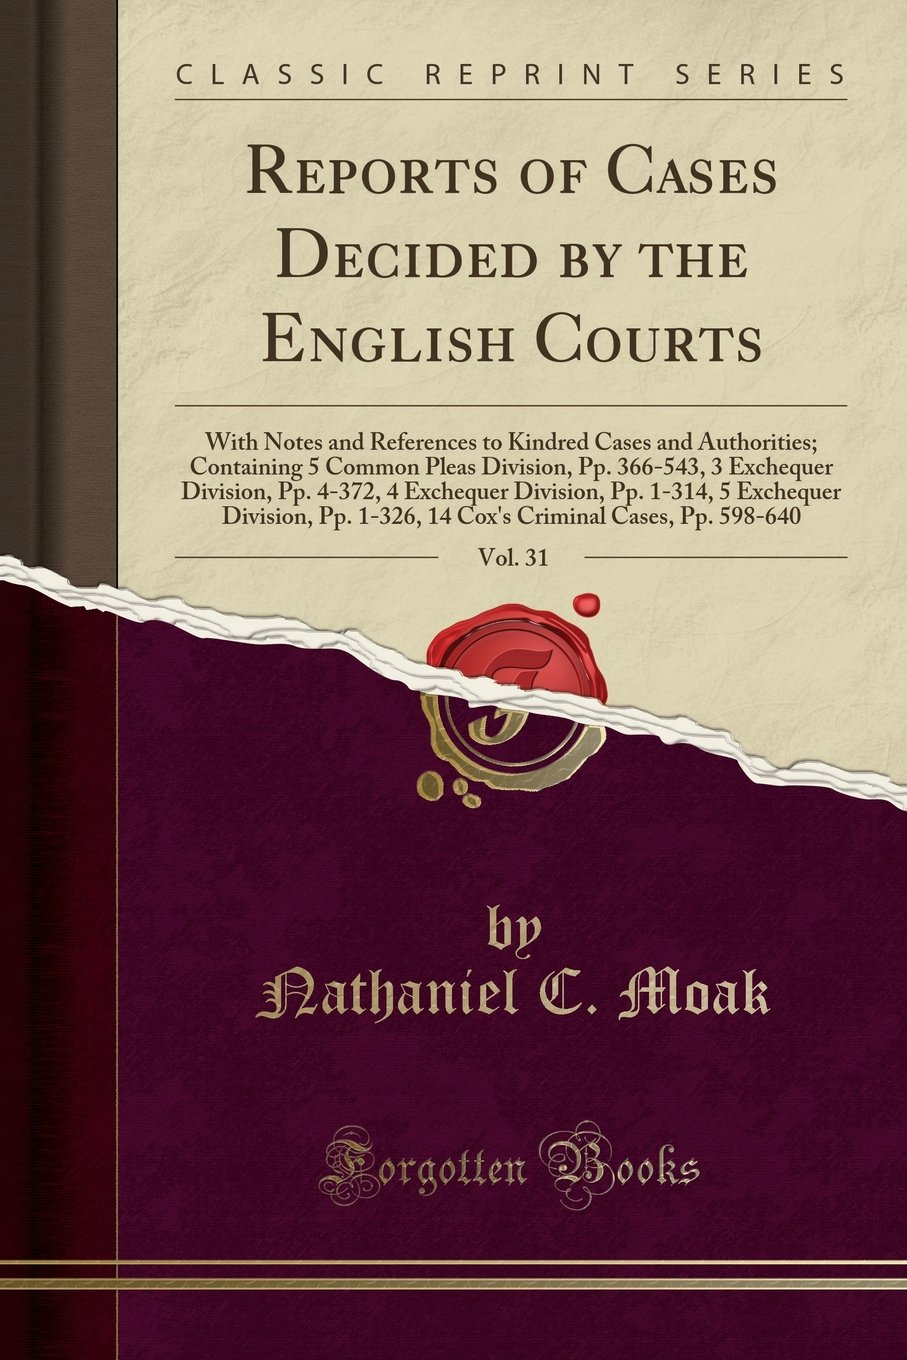 Download Reports of Cases Decided by the English Courts, Vol. 31: With Notes and References to Kindred Cases and Authorities; Containing 5 Common Pleas ... Division, Pp. 1-314, 5 Exchequer Division, P ebook